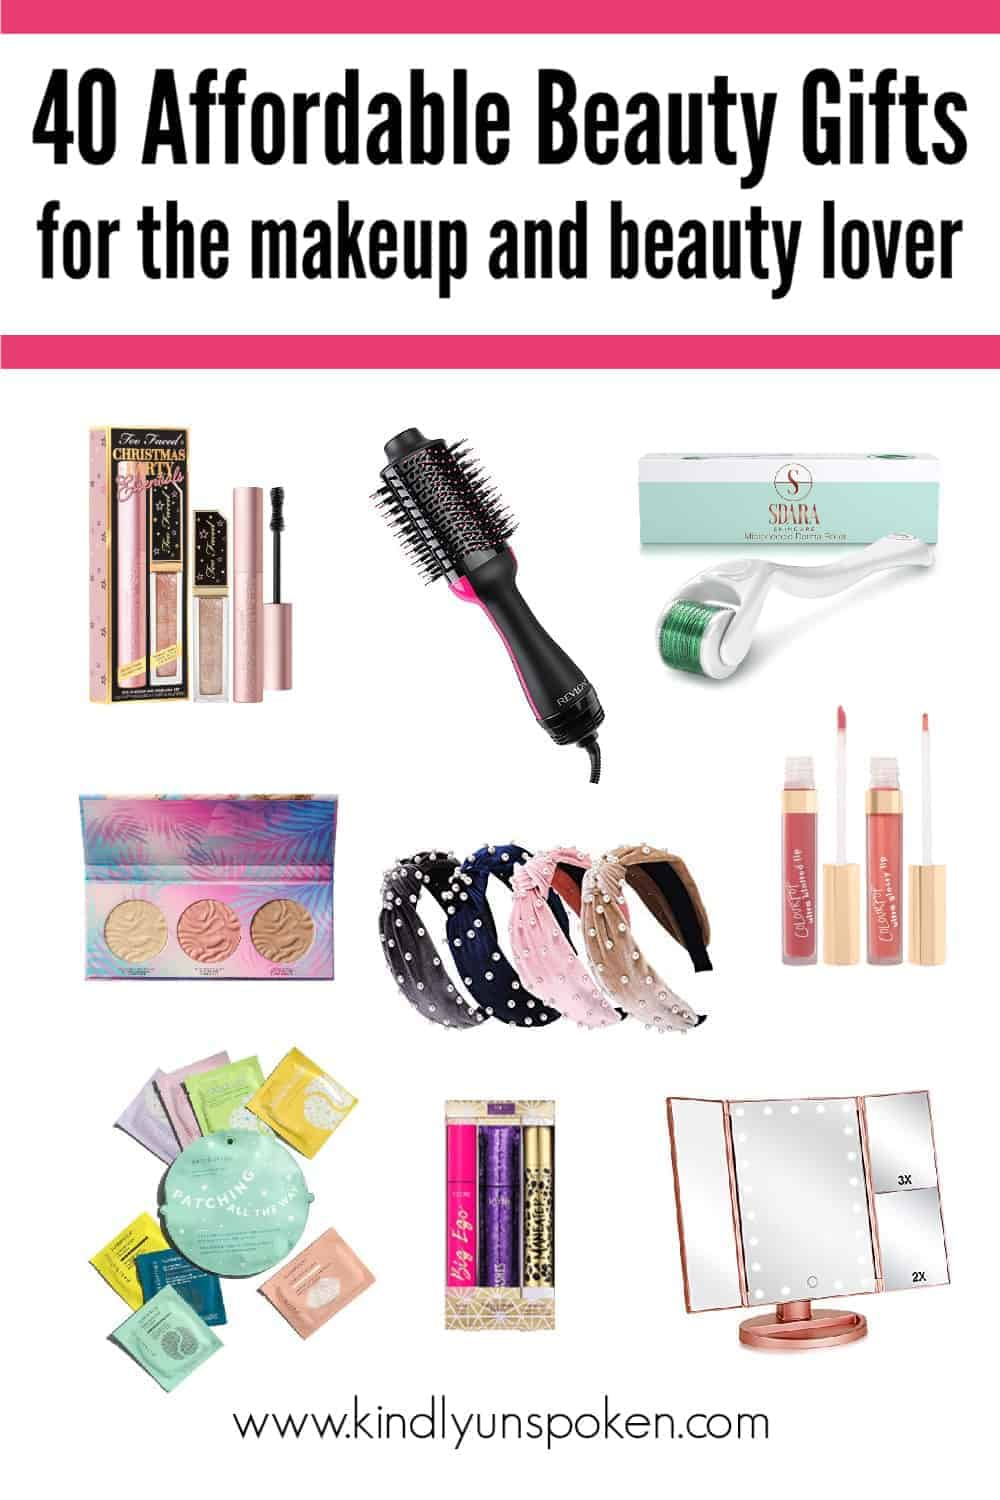 Looking for the best beauty gifts for her and stocking stuffer ideas this Christmas? Check out my beauty gift guide with 40 affordable beauty gift sets and makeup gift sets for gifting to makeup lovers. Everything is under $40! #giftguide #beautygifts #giftsforher #christmasgifts #makeupgifts